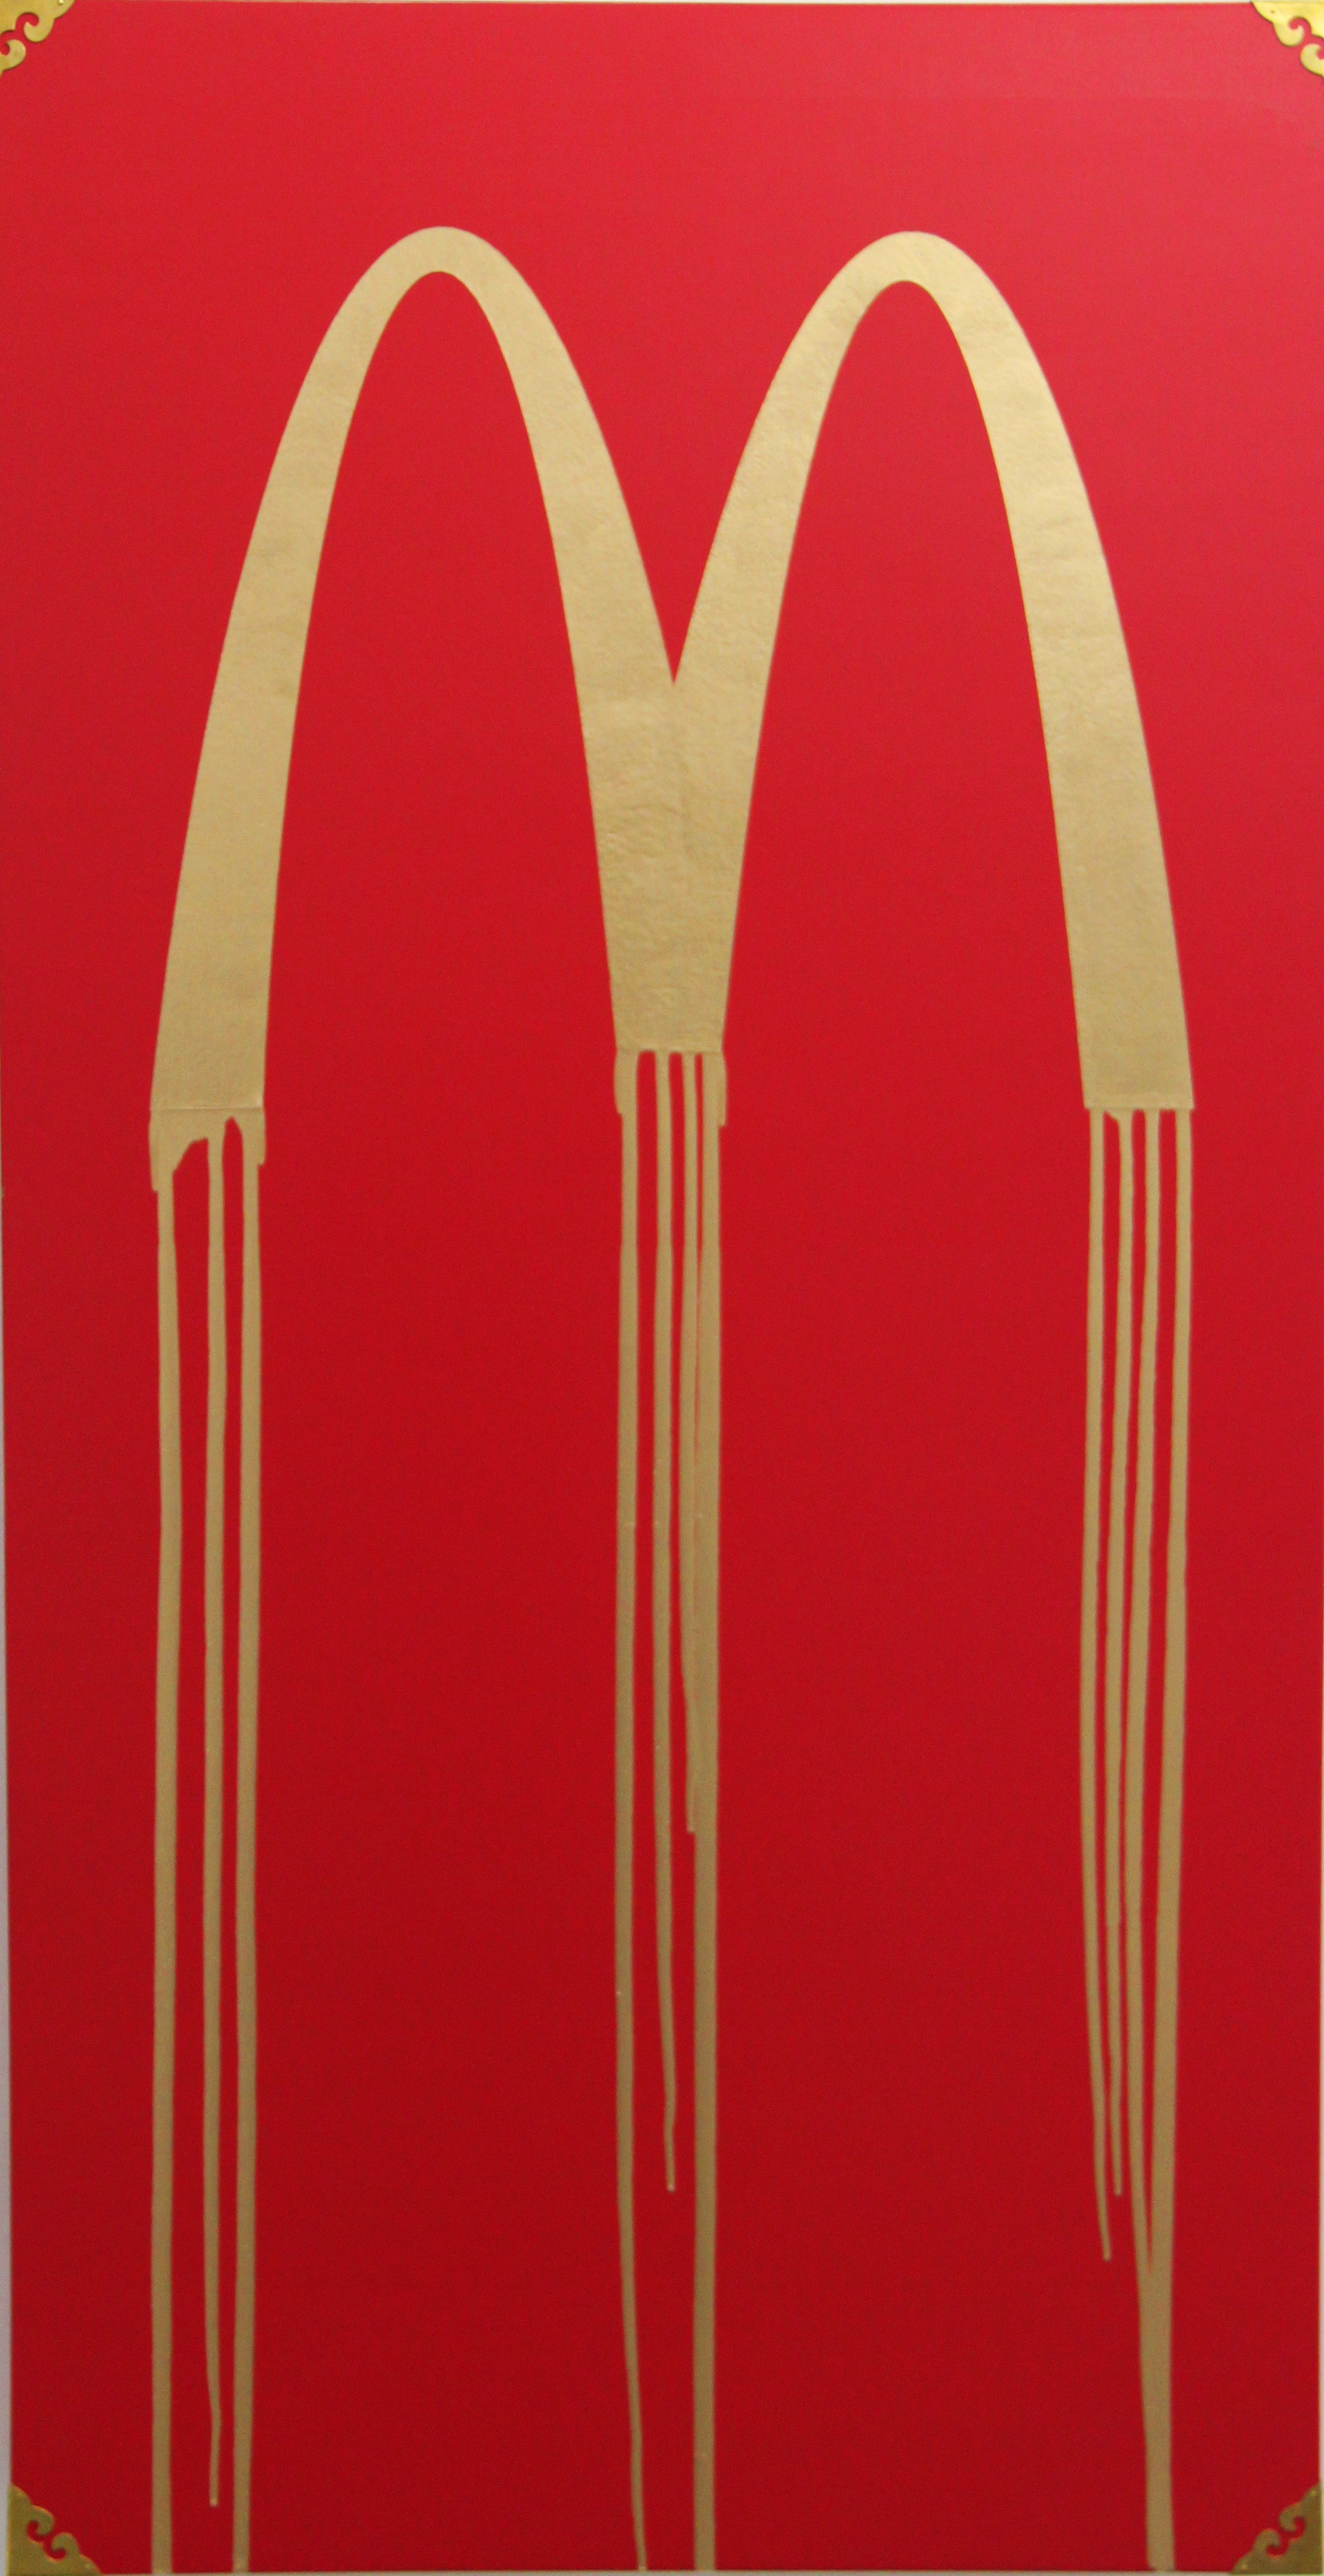 Liquidated McDonald, by Zevs, 2009. Oil on wood. 120 x 62 cm. HK$98,000